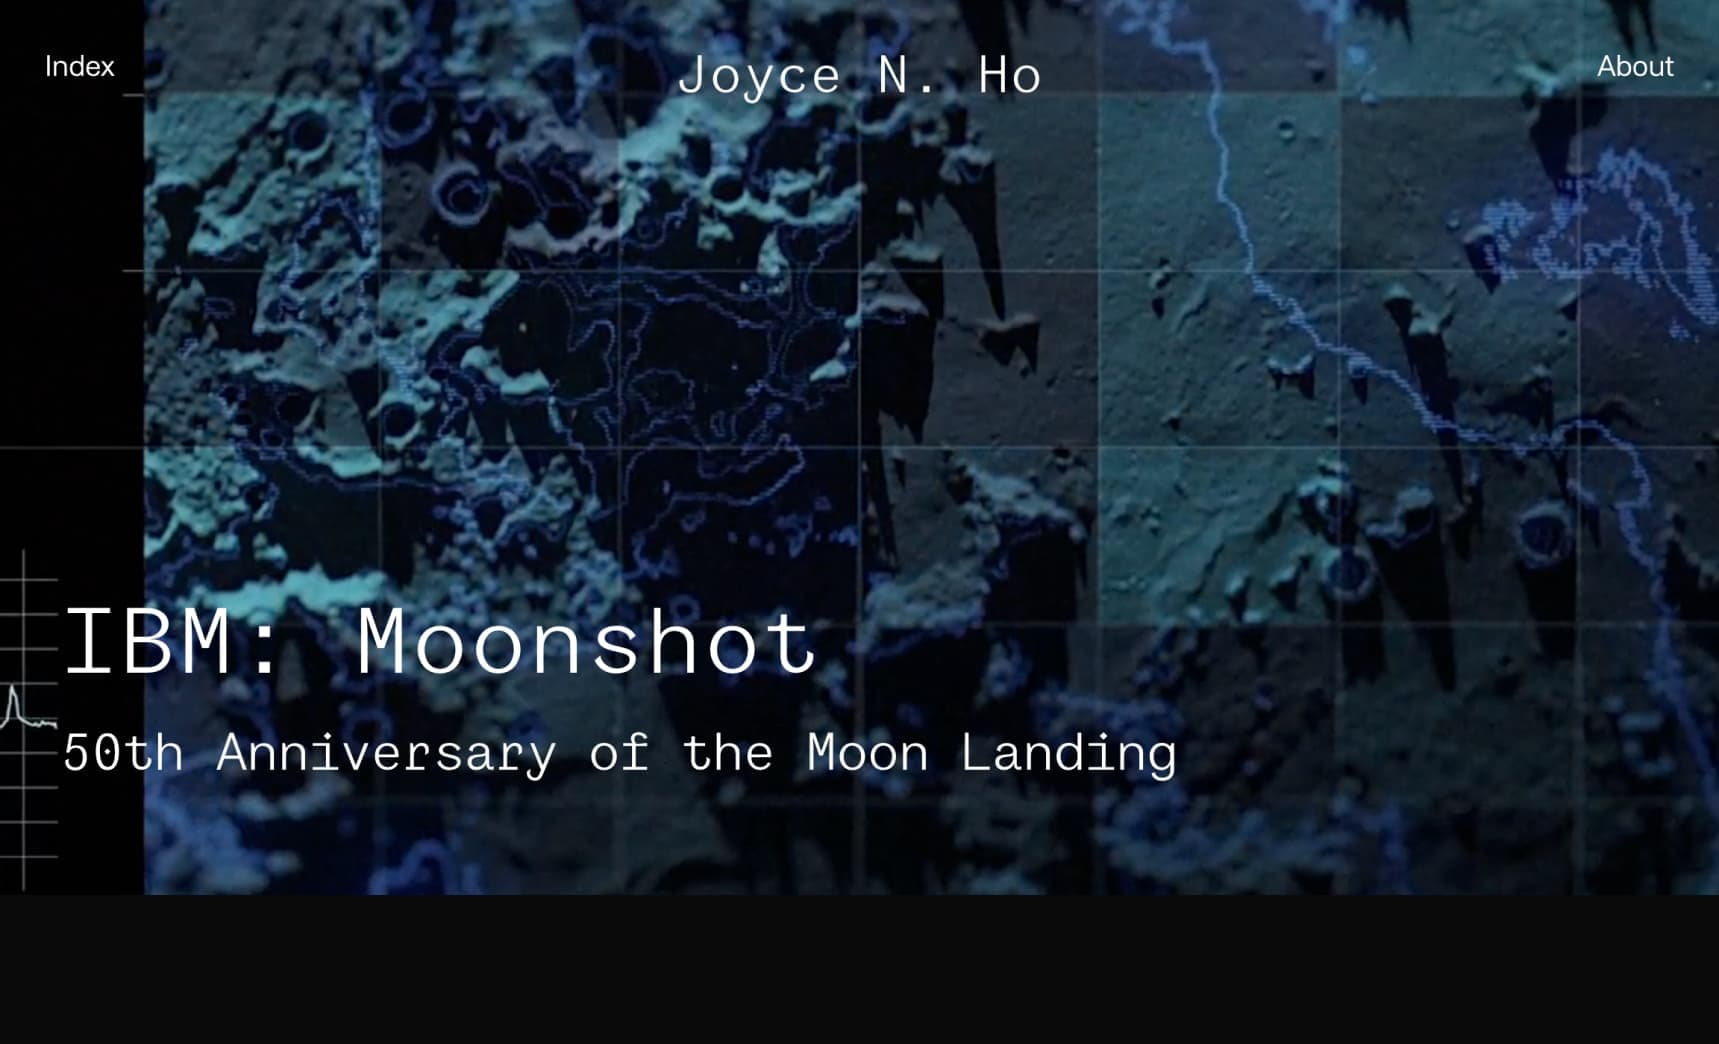 Joyce N Ho website screenshot IBM Moonshot